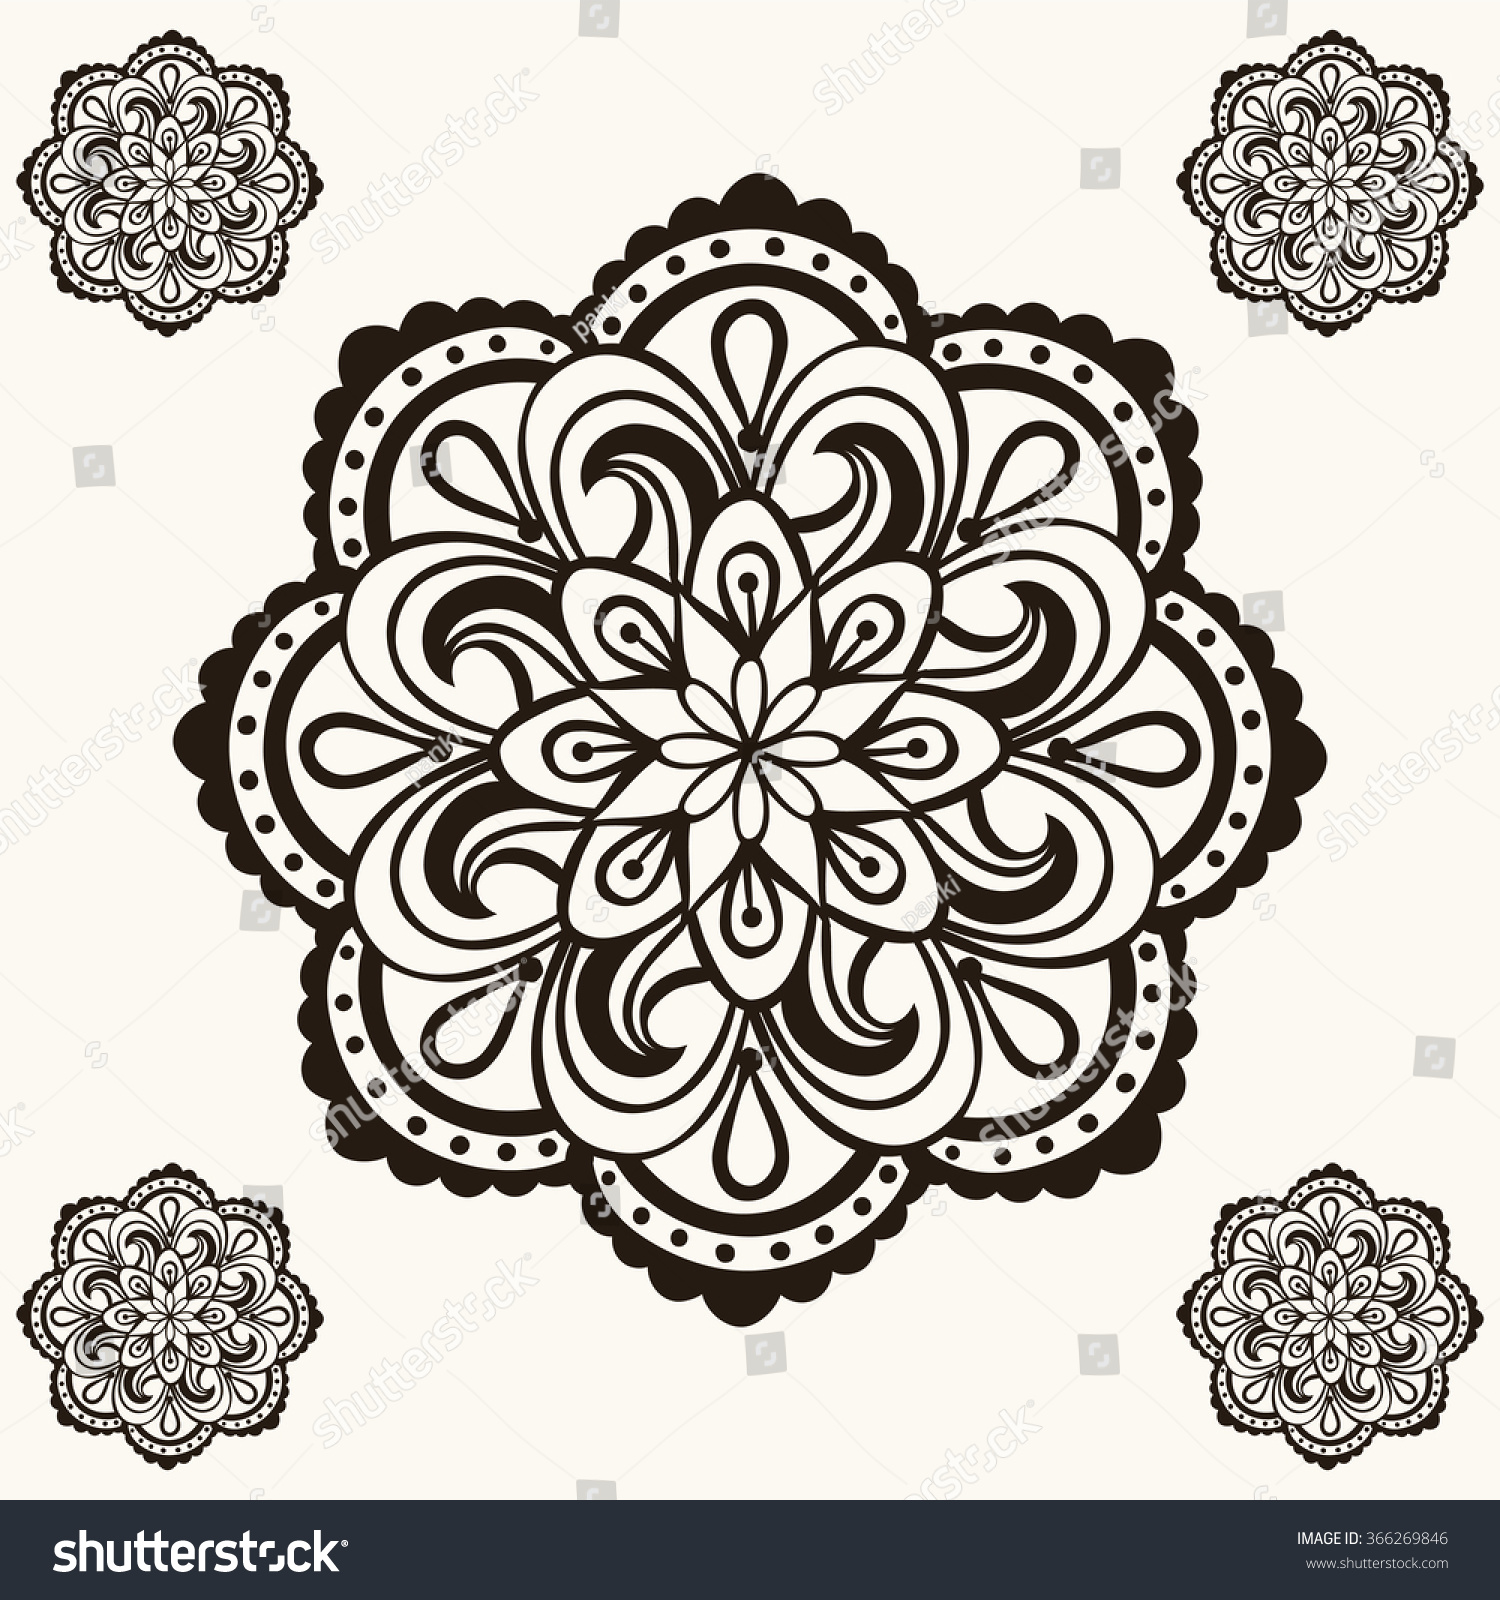 Henna Mandalas Boho Tattoo Design Doodle Stock Illustration